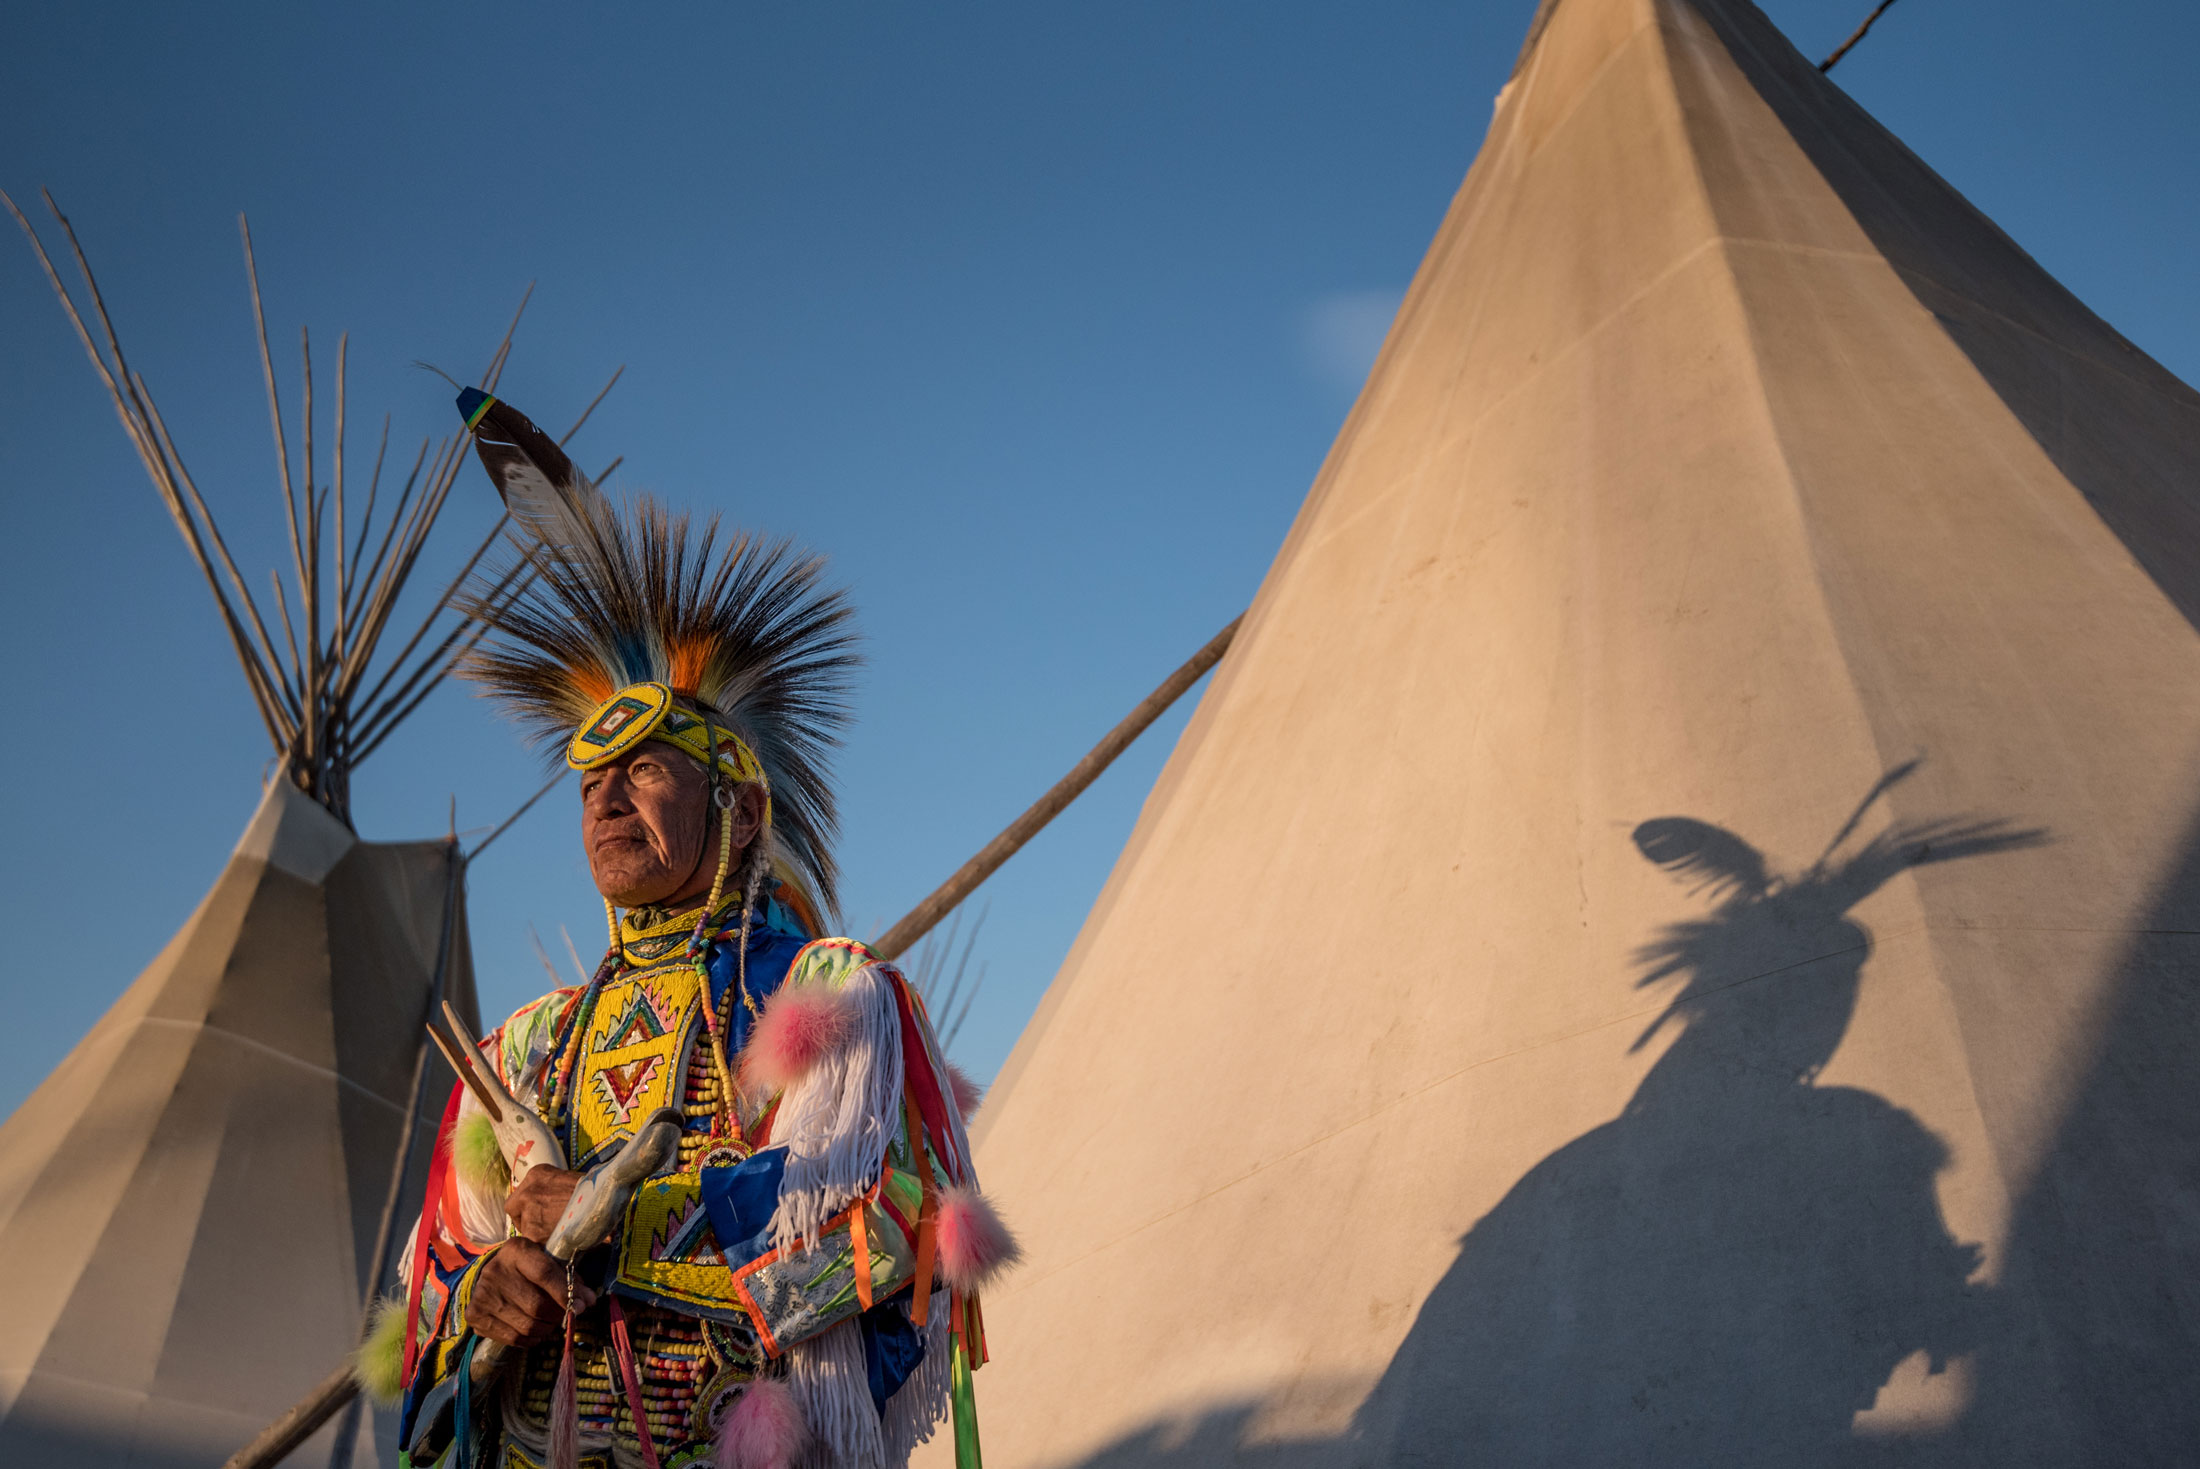 american indian days in east glacier park